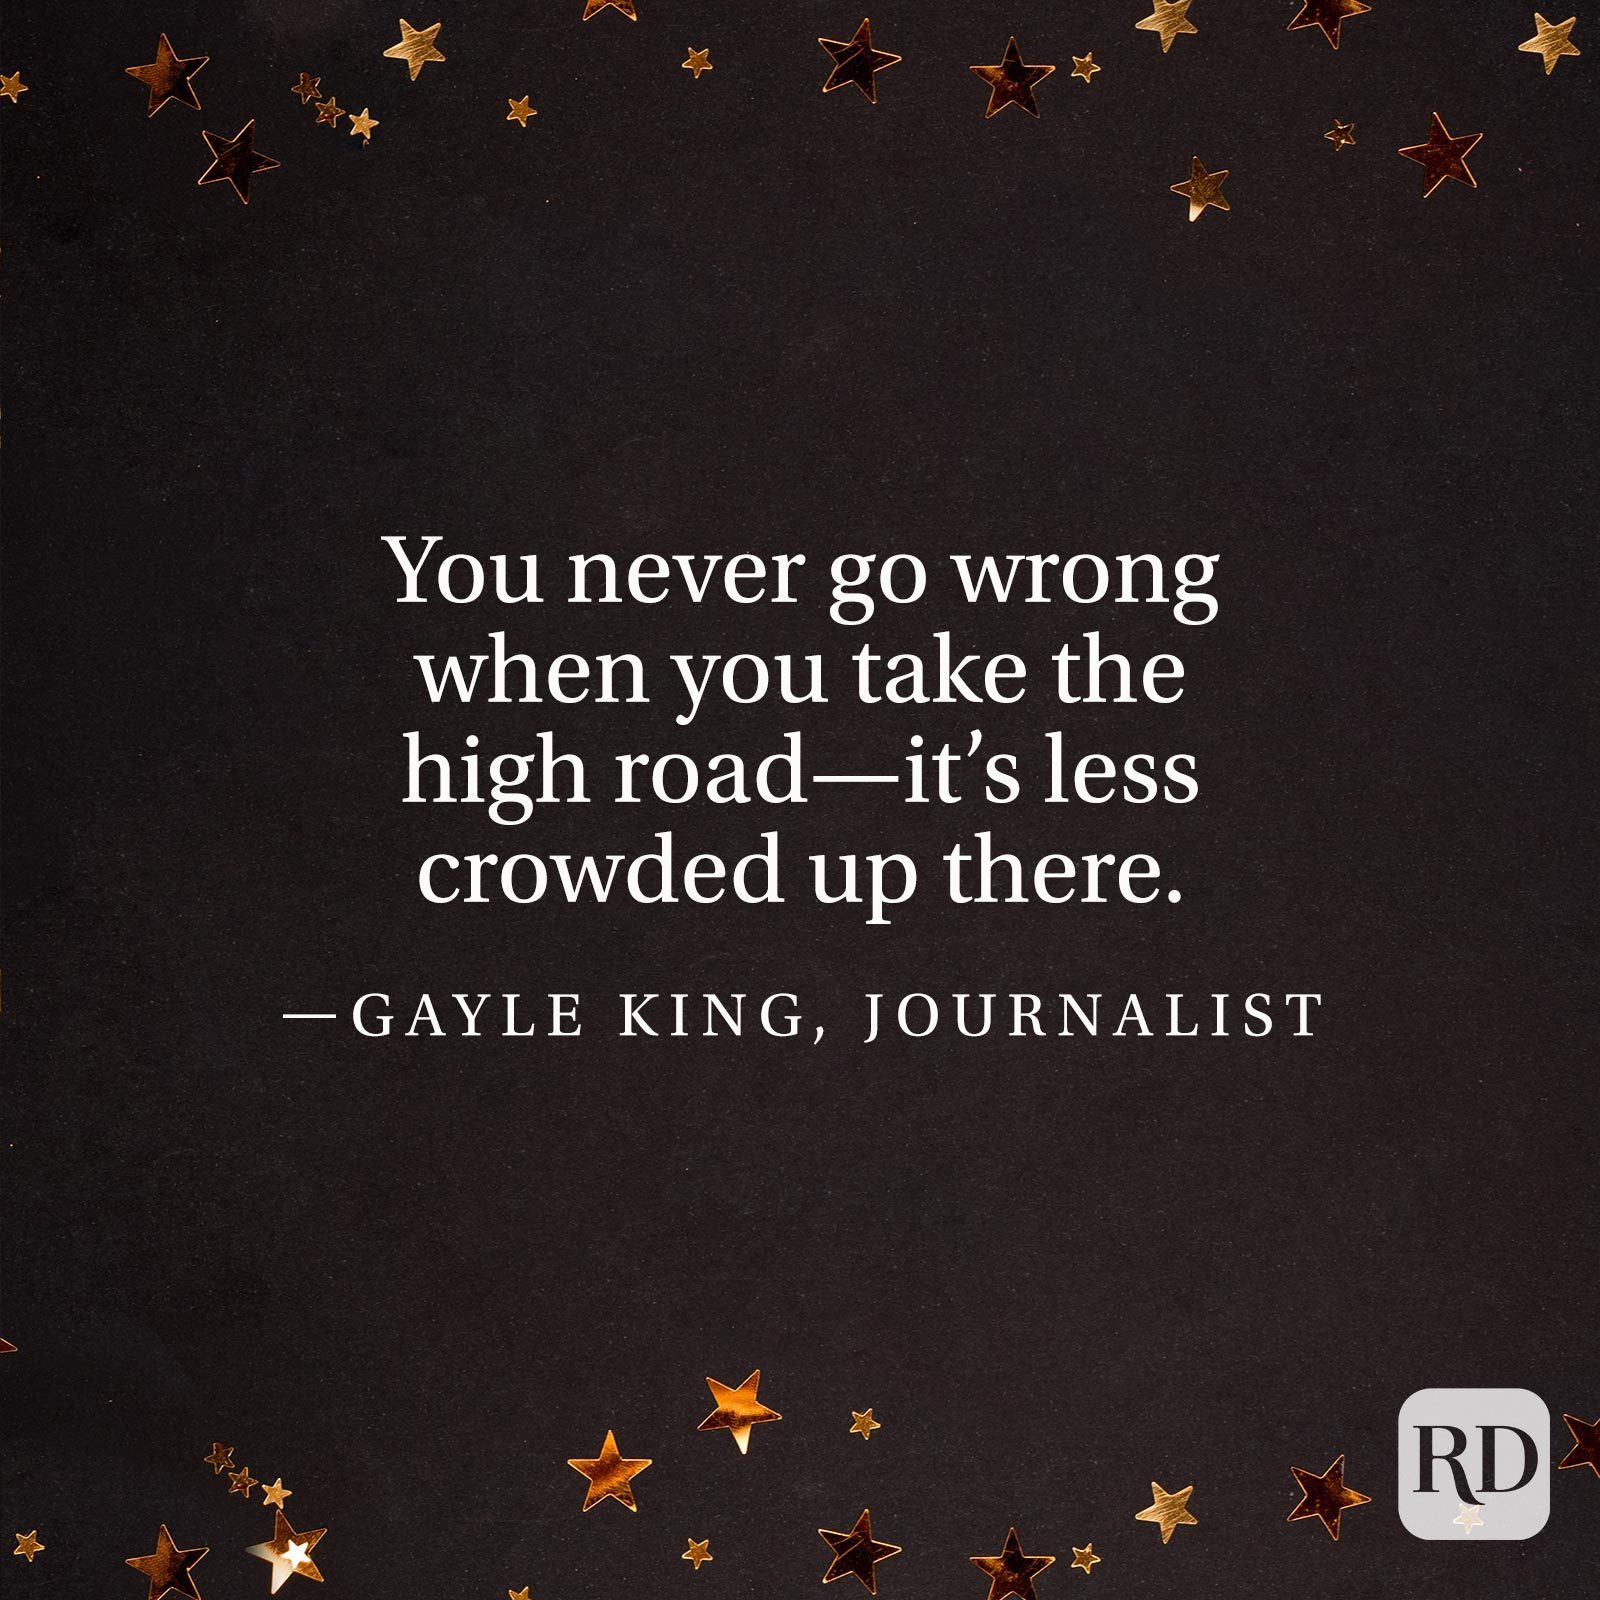 """You never go wrong when you take the high road—it's less crowded up there."" —Gayle King, journalist"